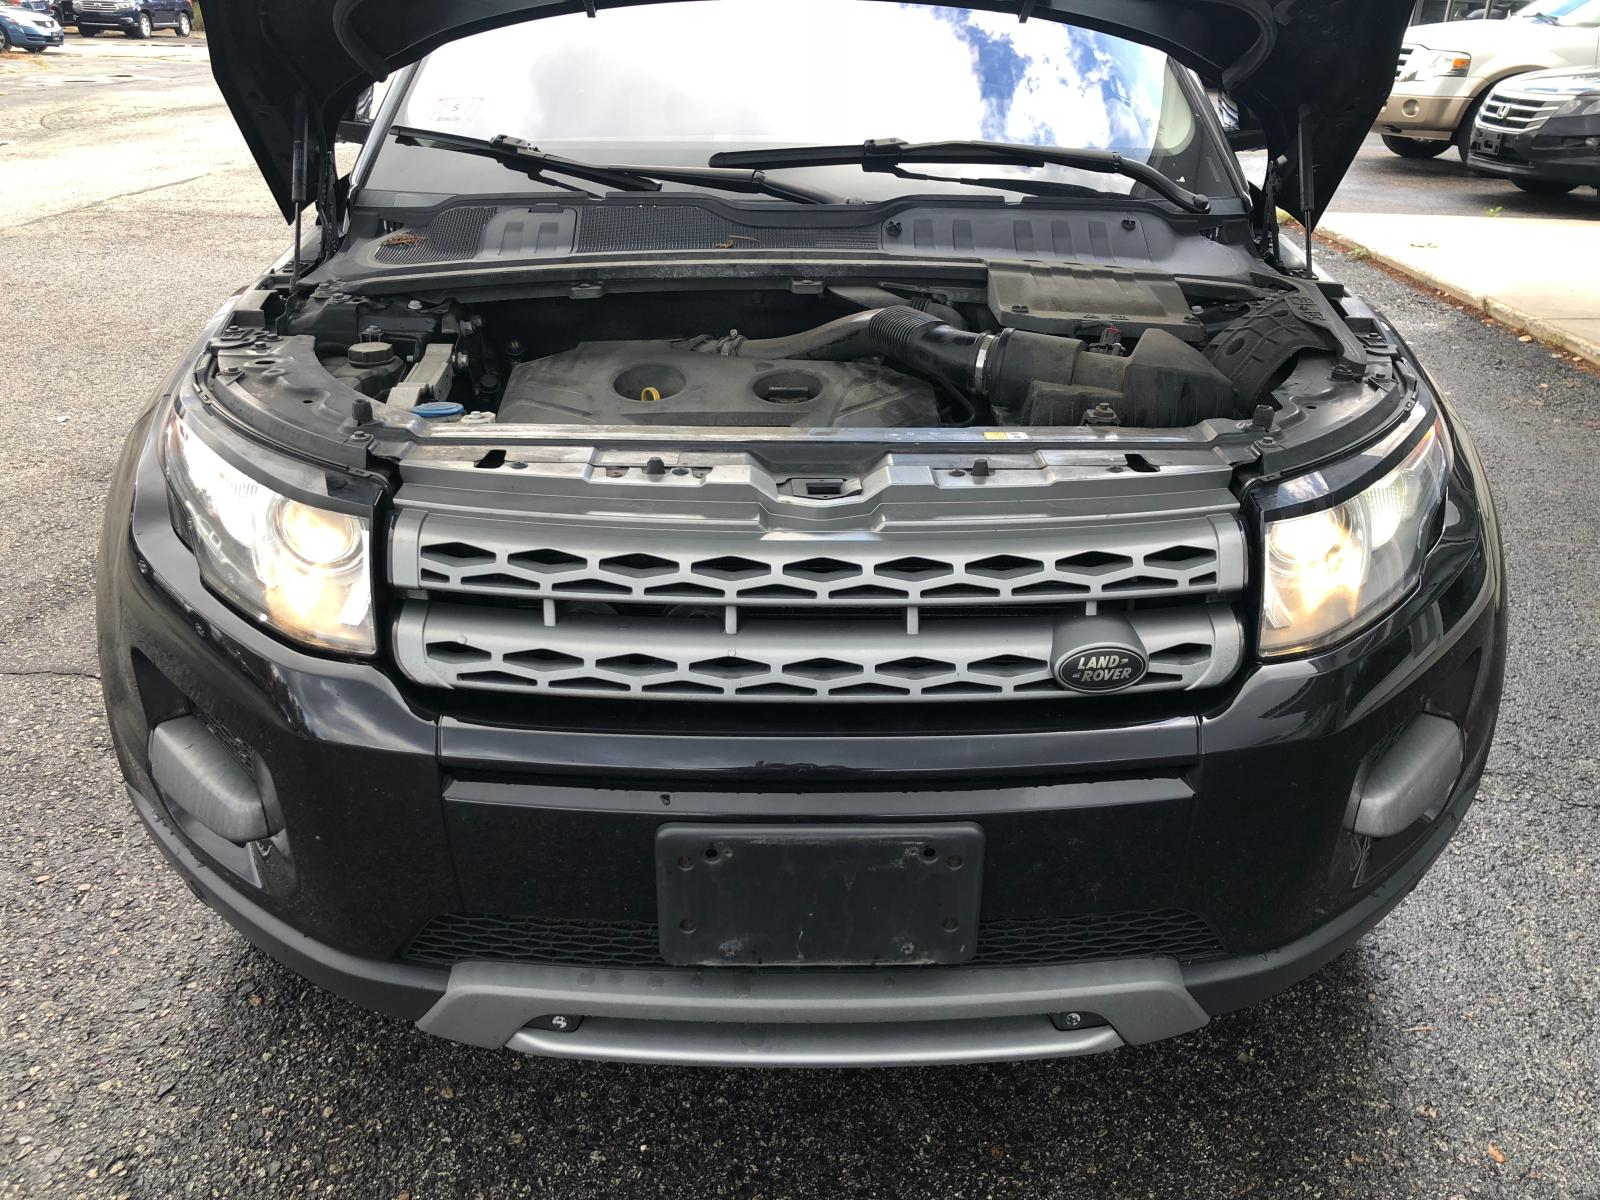 2013 Land Rover Range Rove 2.0L front view